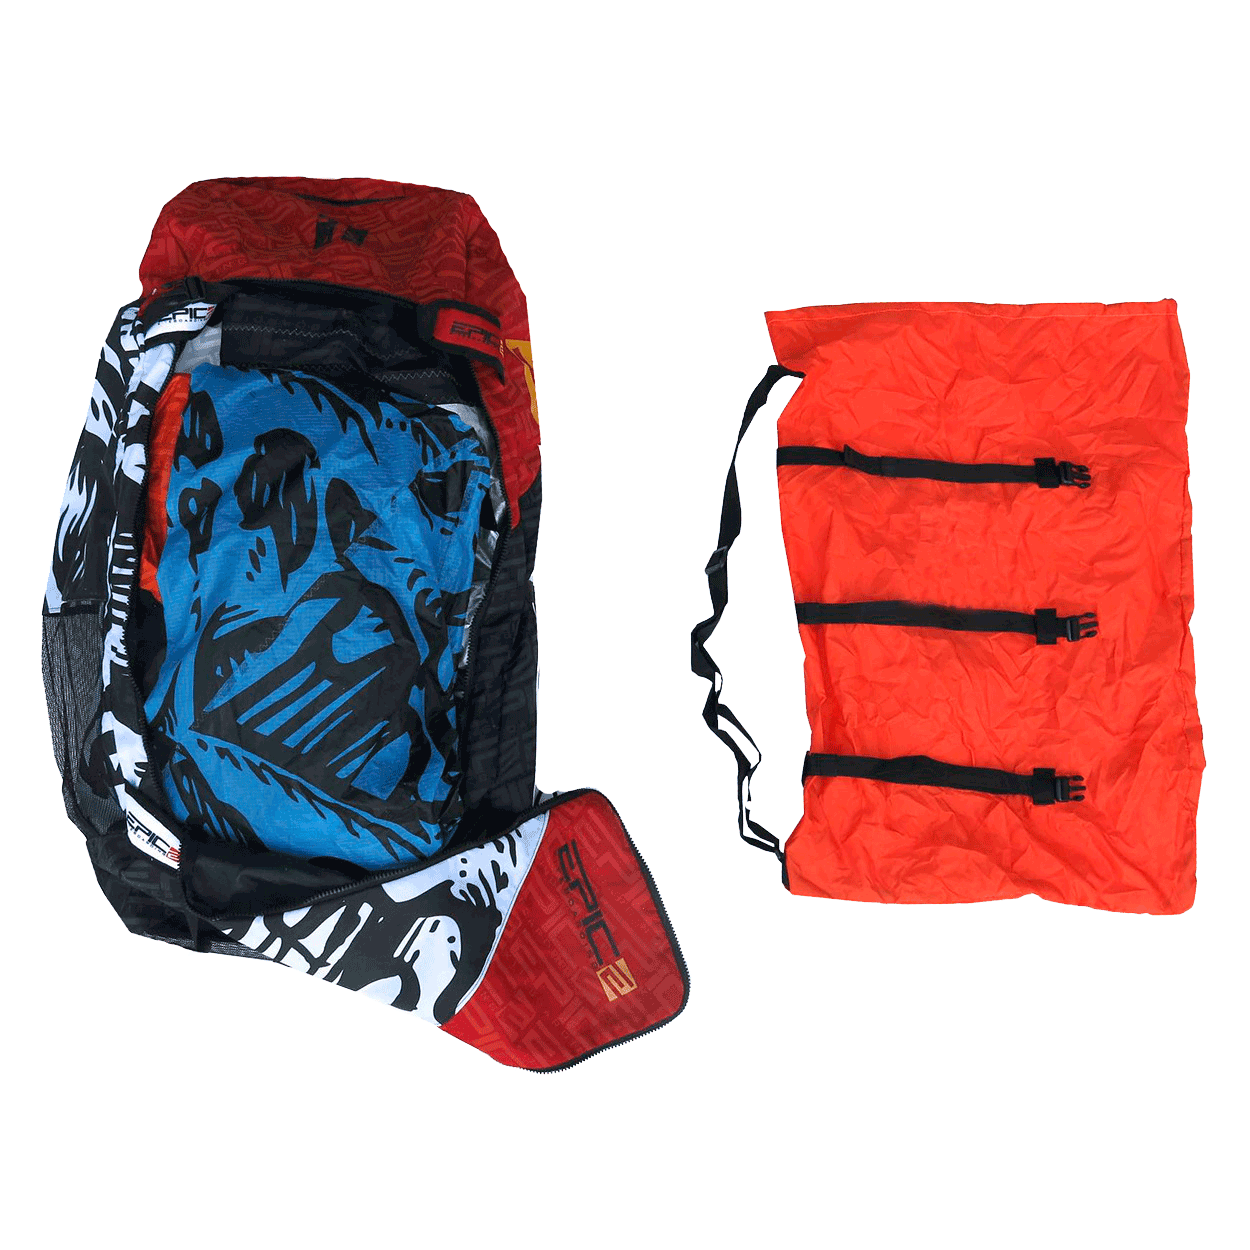 EPIC COMPRESSION BAG WITH KITE